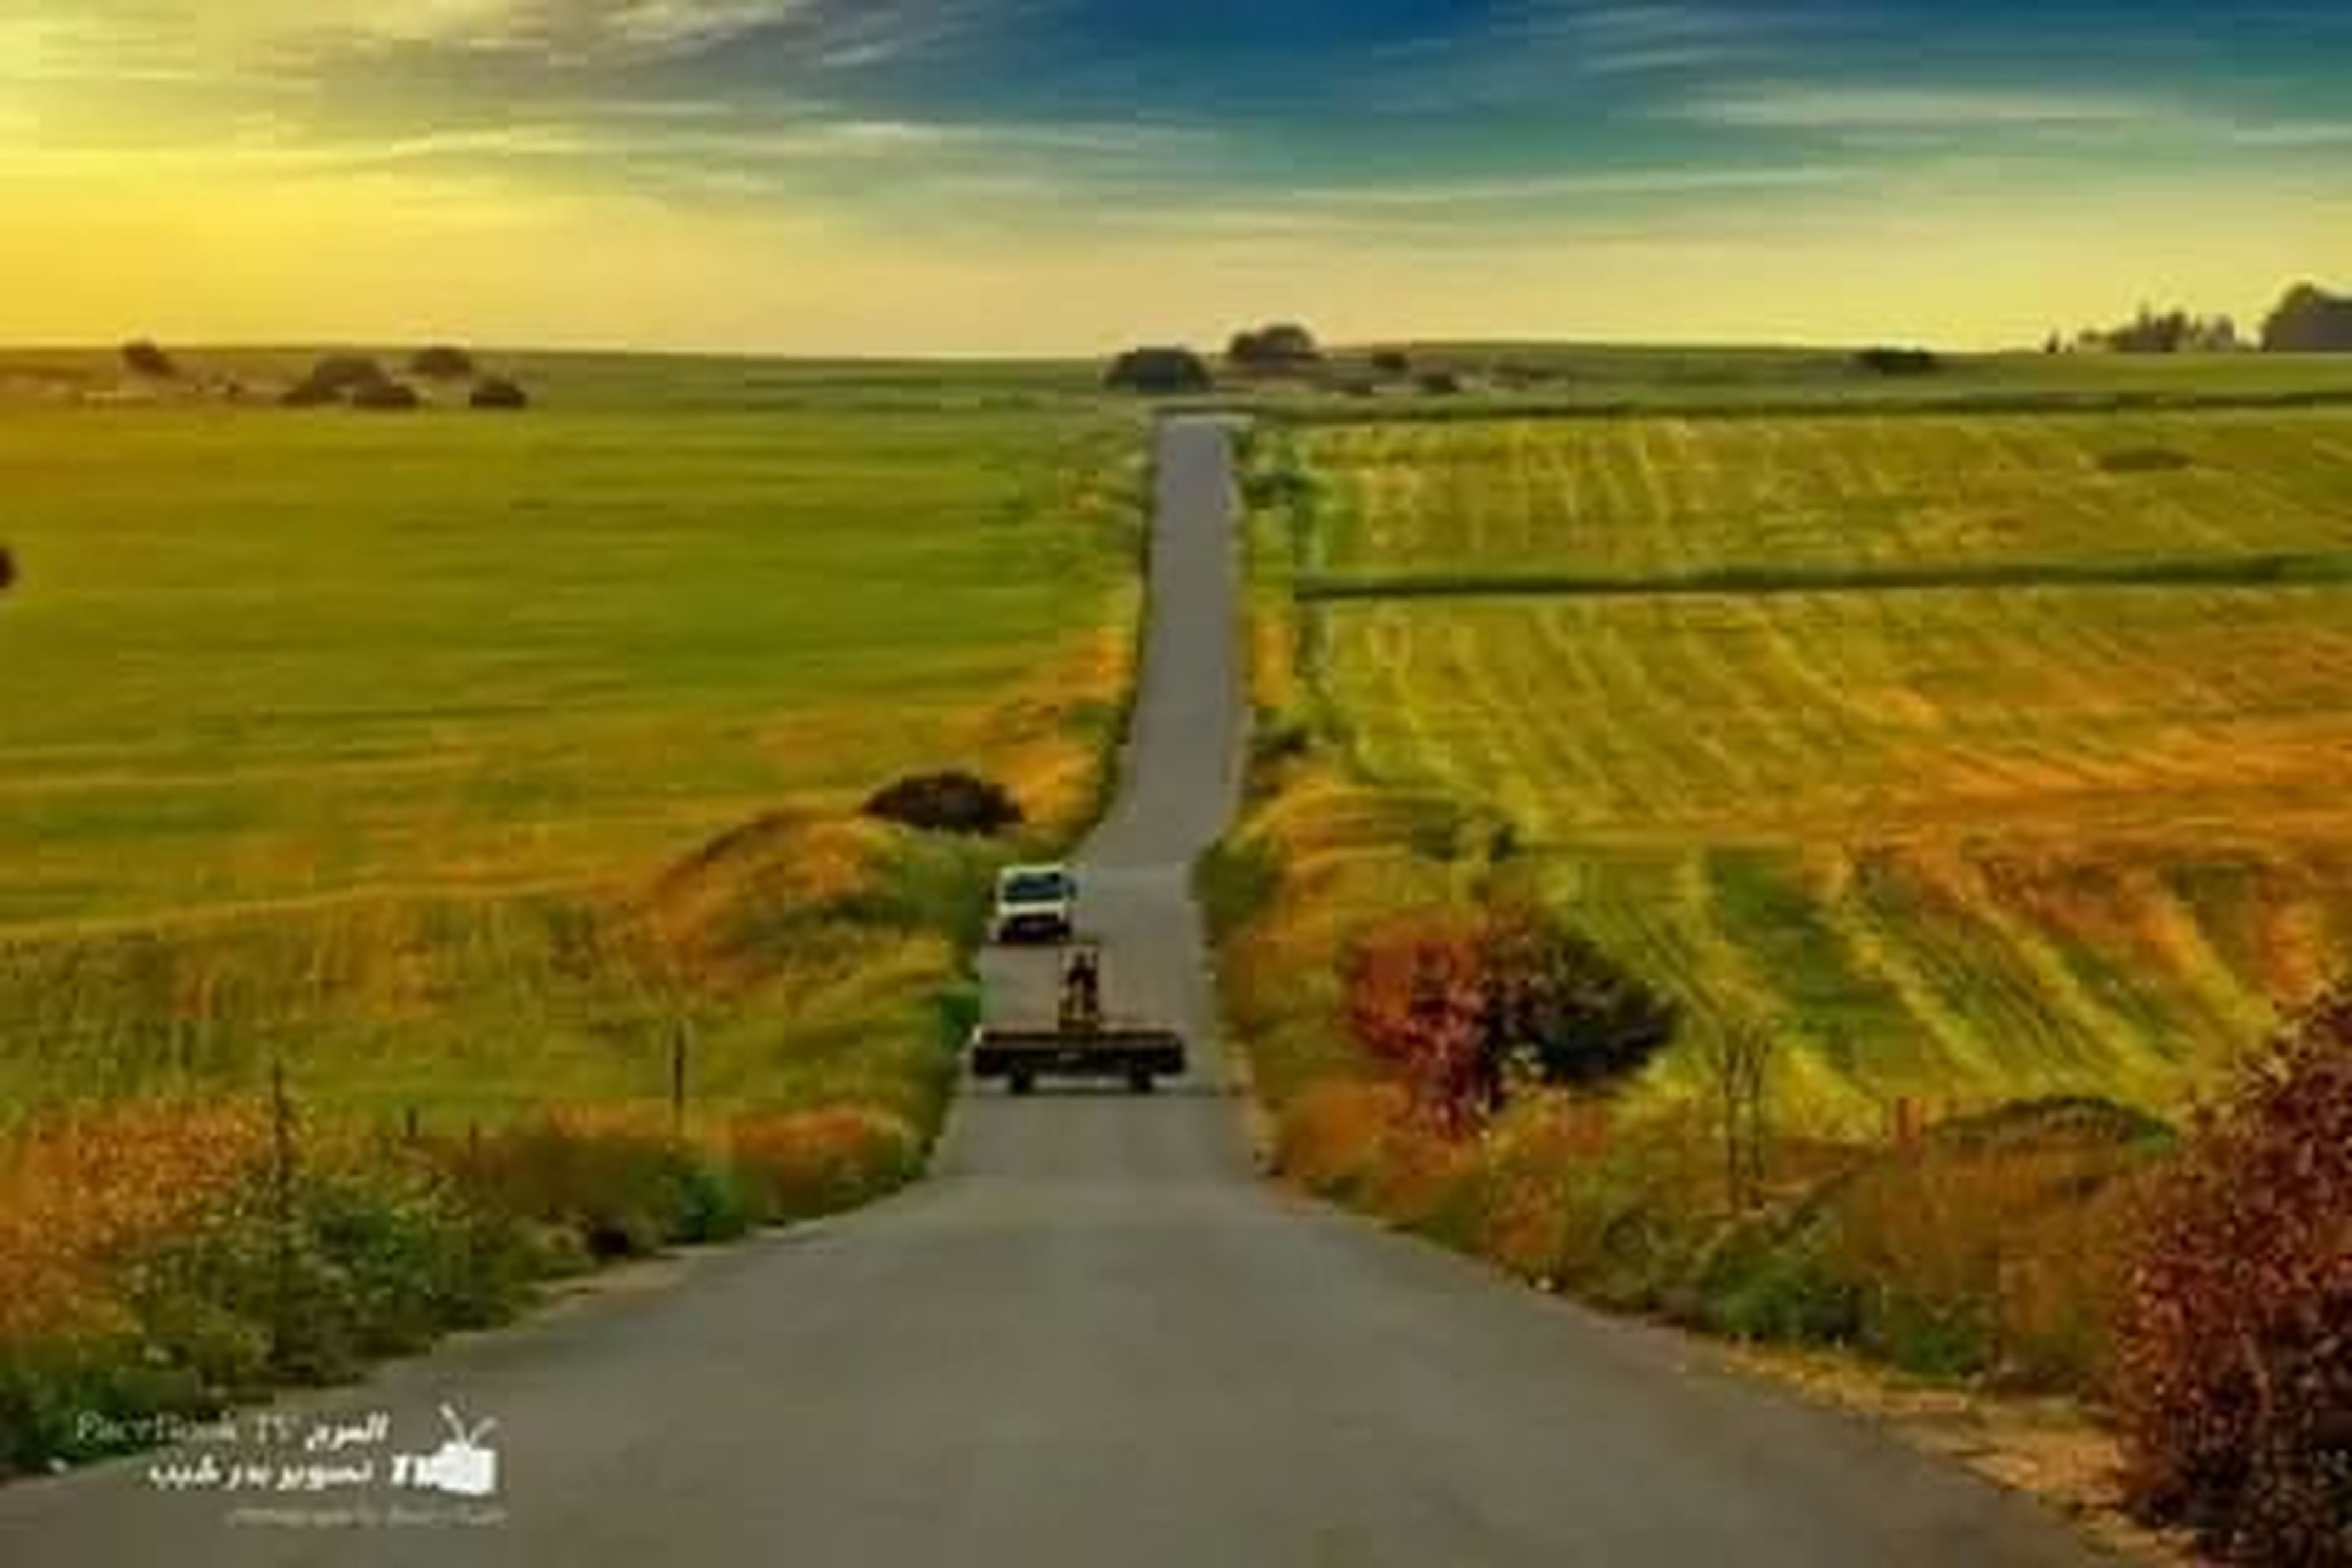 the way forward, road, sky, landscape, tranquility, transportation, sunset, tranquil scene, field, diminishing perspective, country road, grass, scenics, beauty in nature, nature, tree, vanishing point, cloud - sky, rural scene, plant